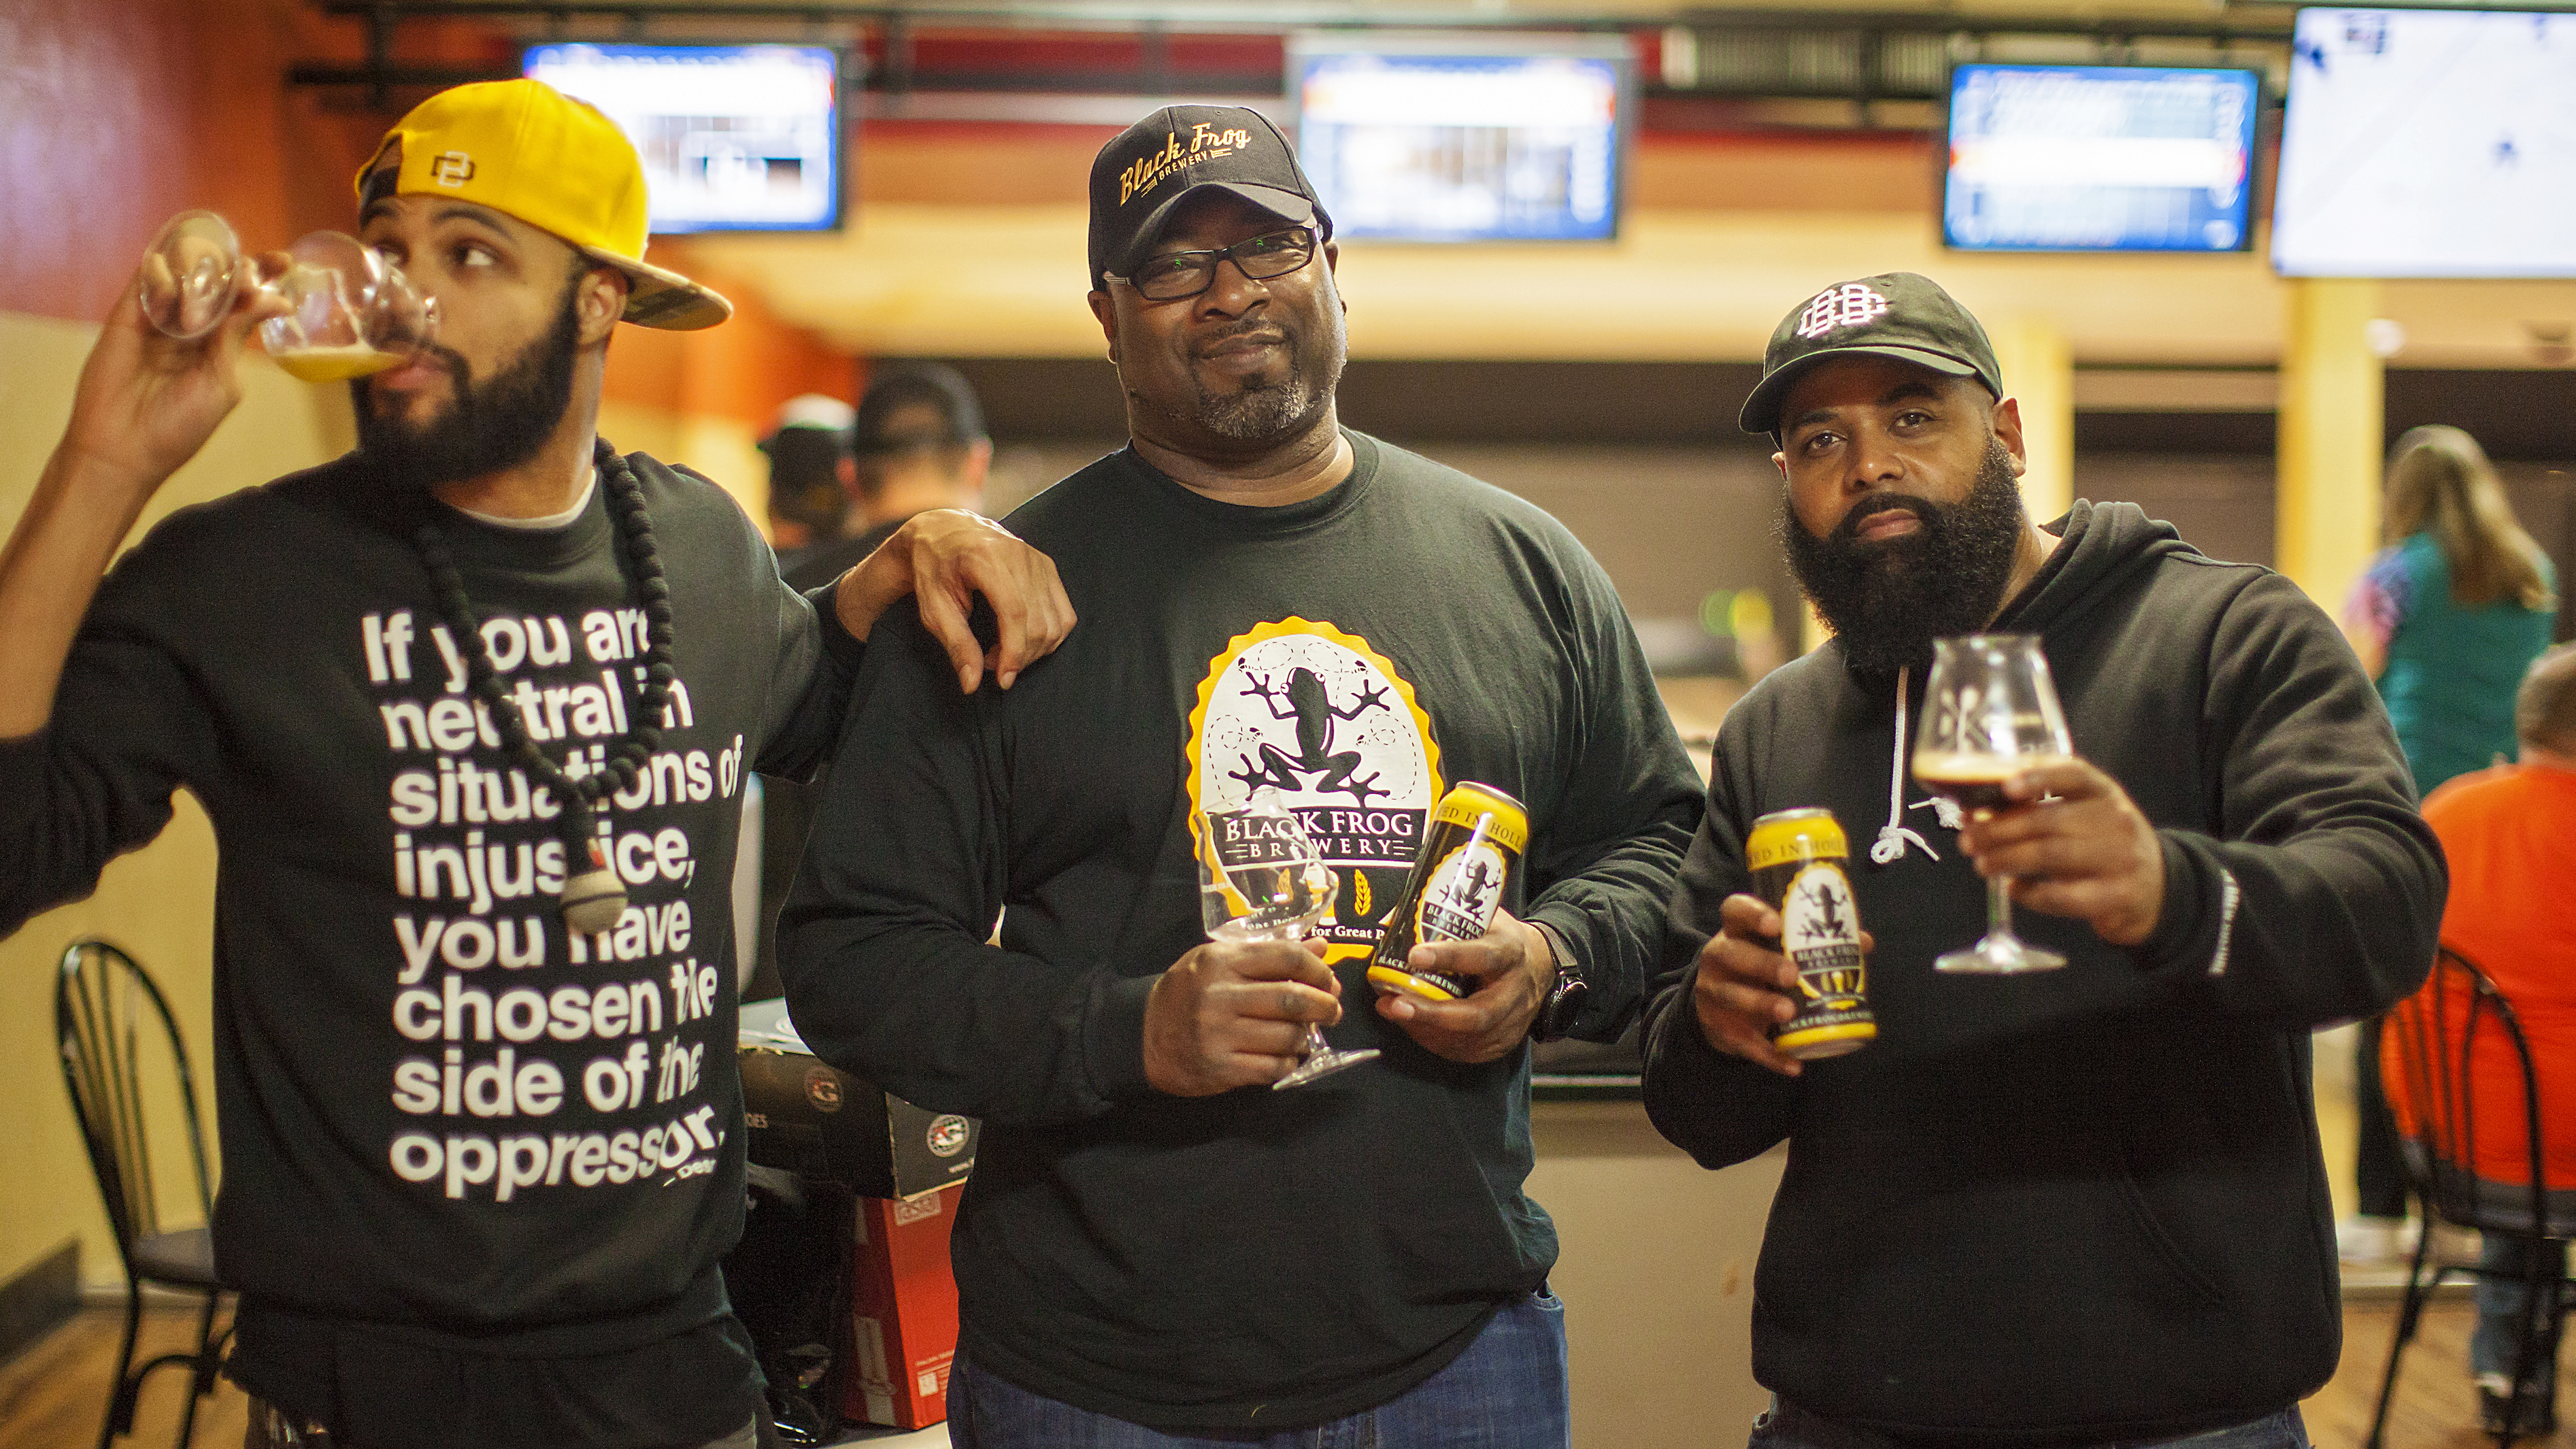 Fresh Fest co-founders Day Bracey (left) and Mike Potter (right) visit with Chris Harris, owner of Black Frog Brewery in Holland, Ohio, near Toledo. (Jeff Zoet/Courtesy Day Bracey)